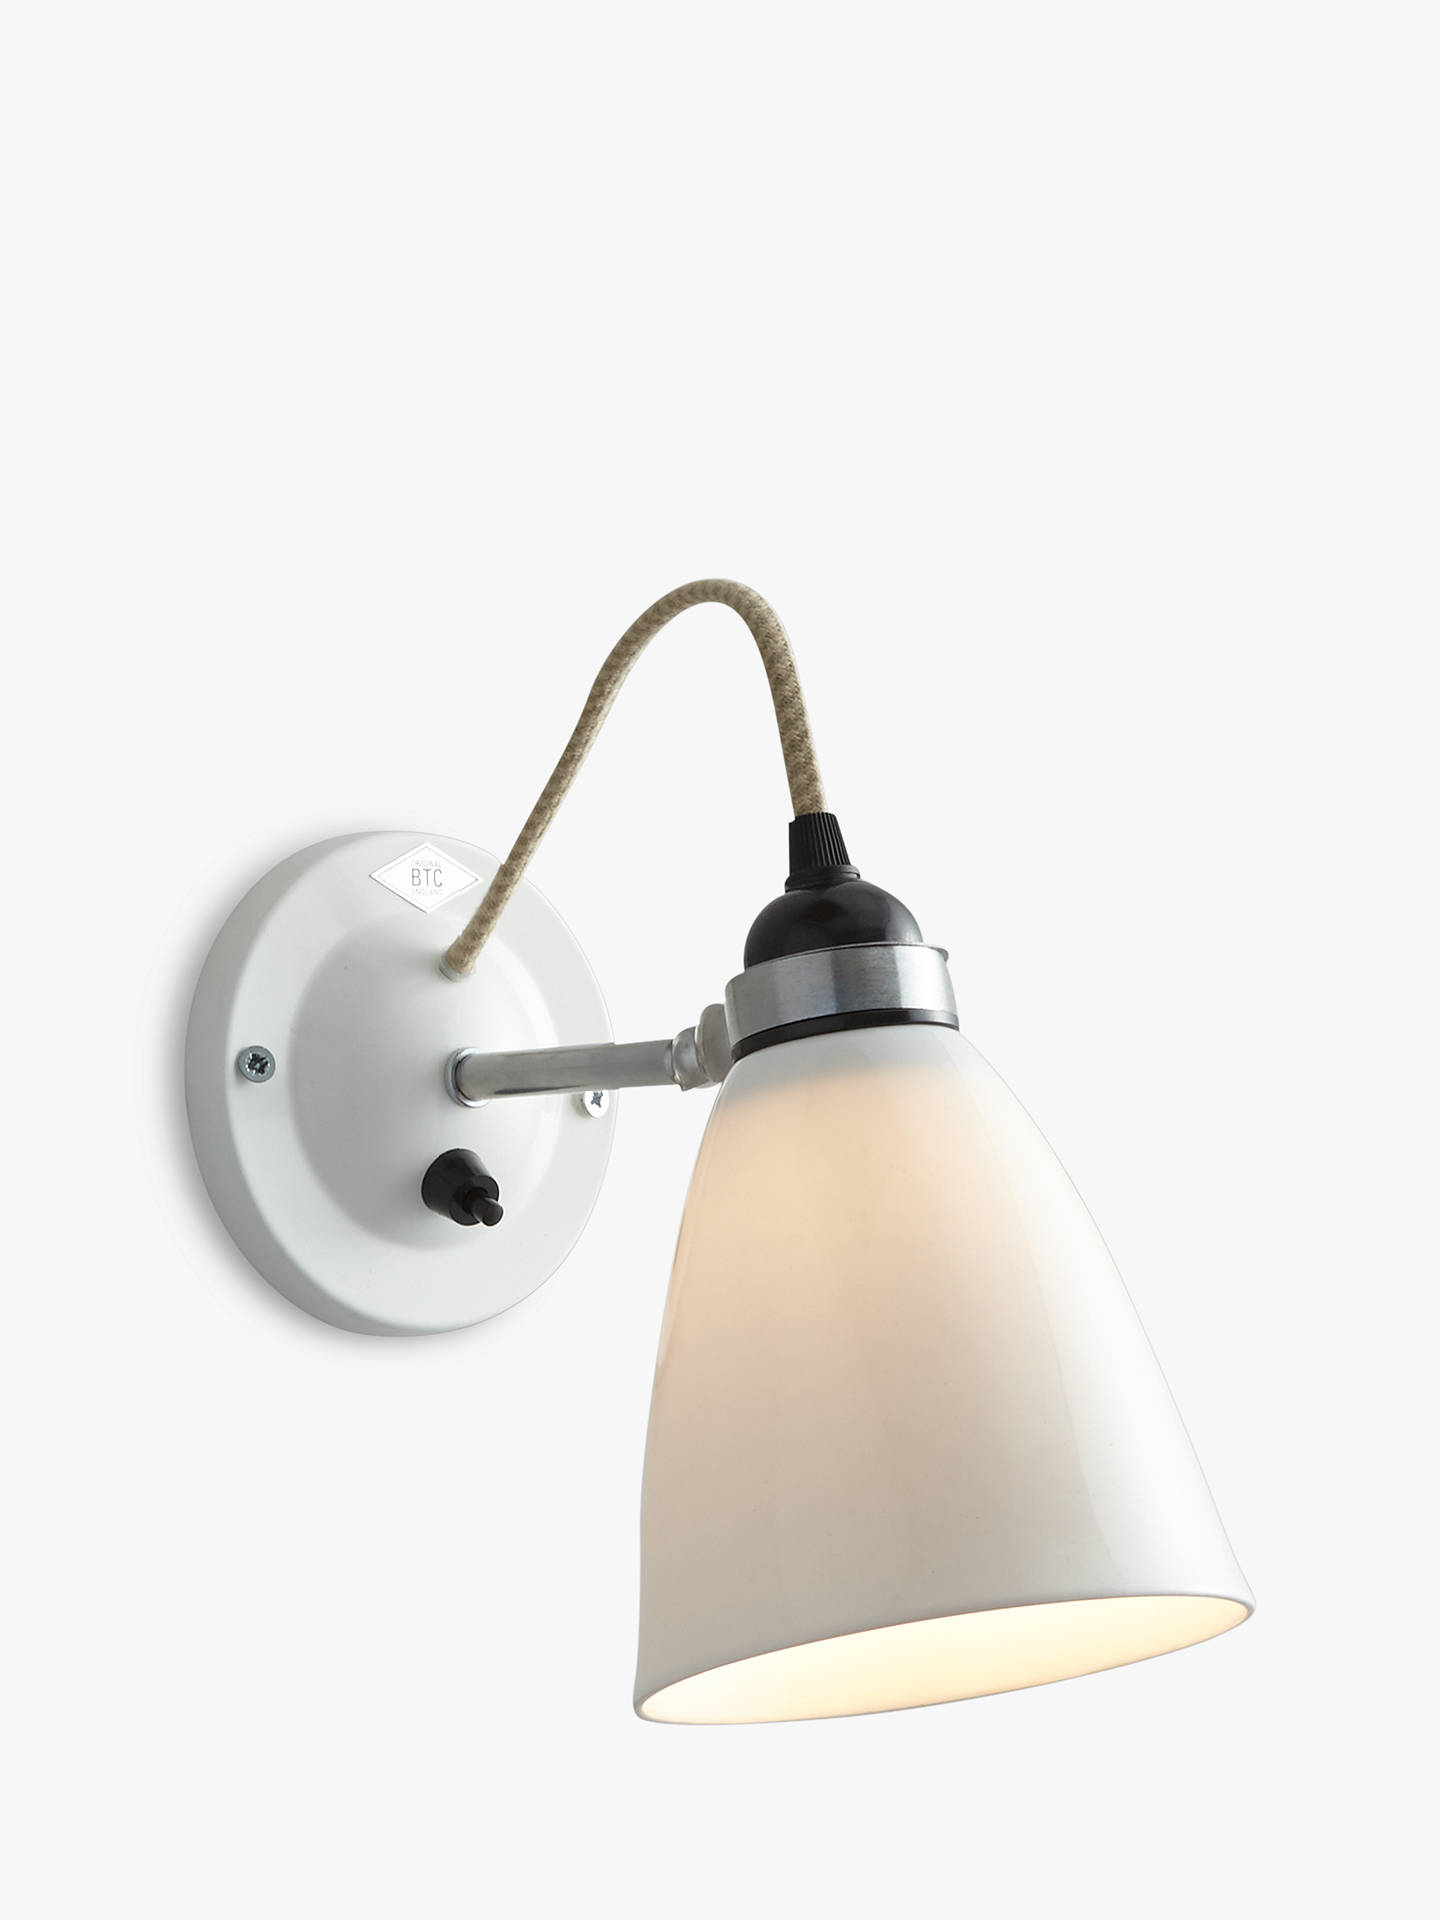 BuyOriginal BTC Hector Dome Switched Wall Light, Medium, Natural White Online at johnlewis.com